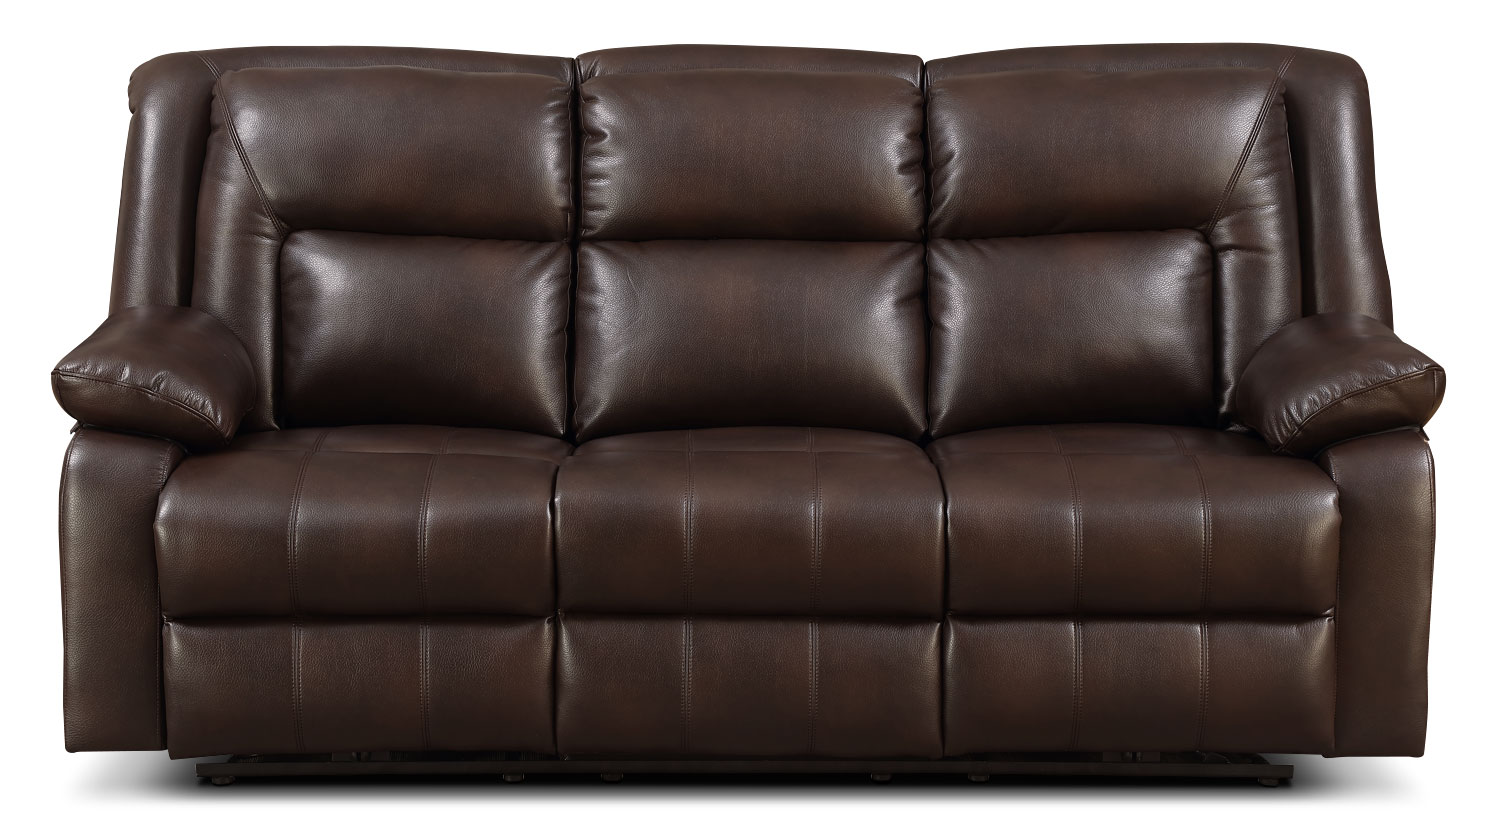 Living Room Furniture - Blane Leather-Look Fabric Power Reclining Sofa – Brown